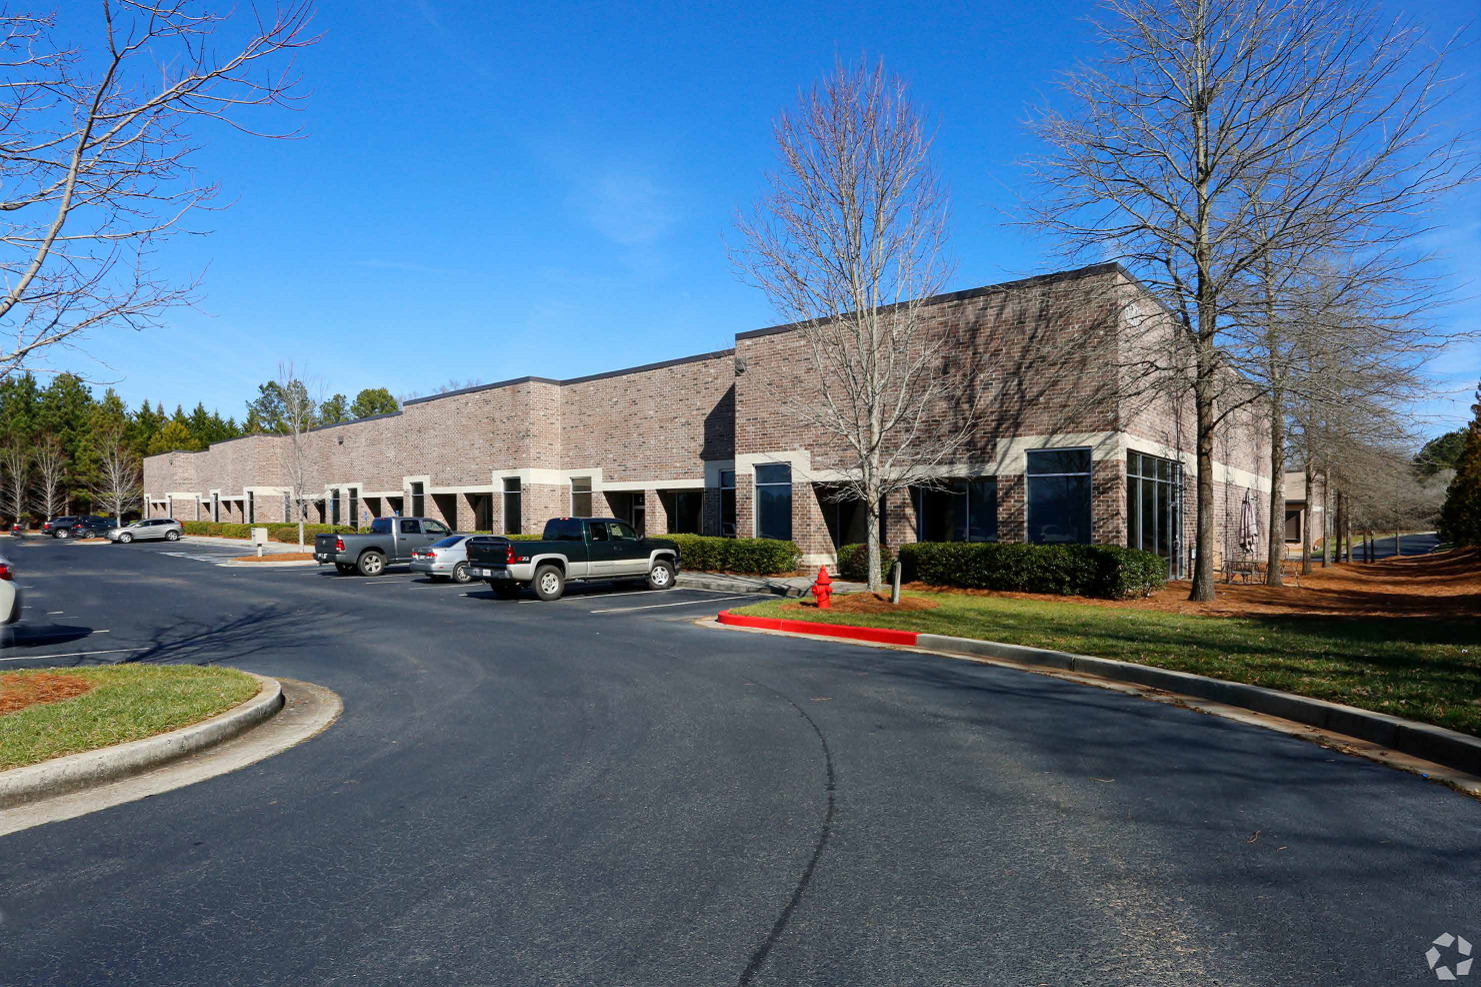 SHILOH CROSSING DISTRIBUTION CENTER